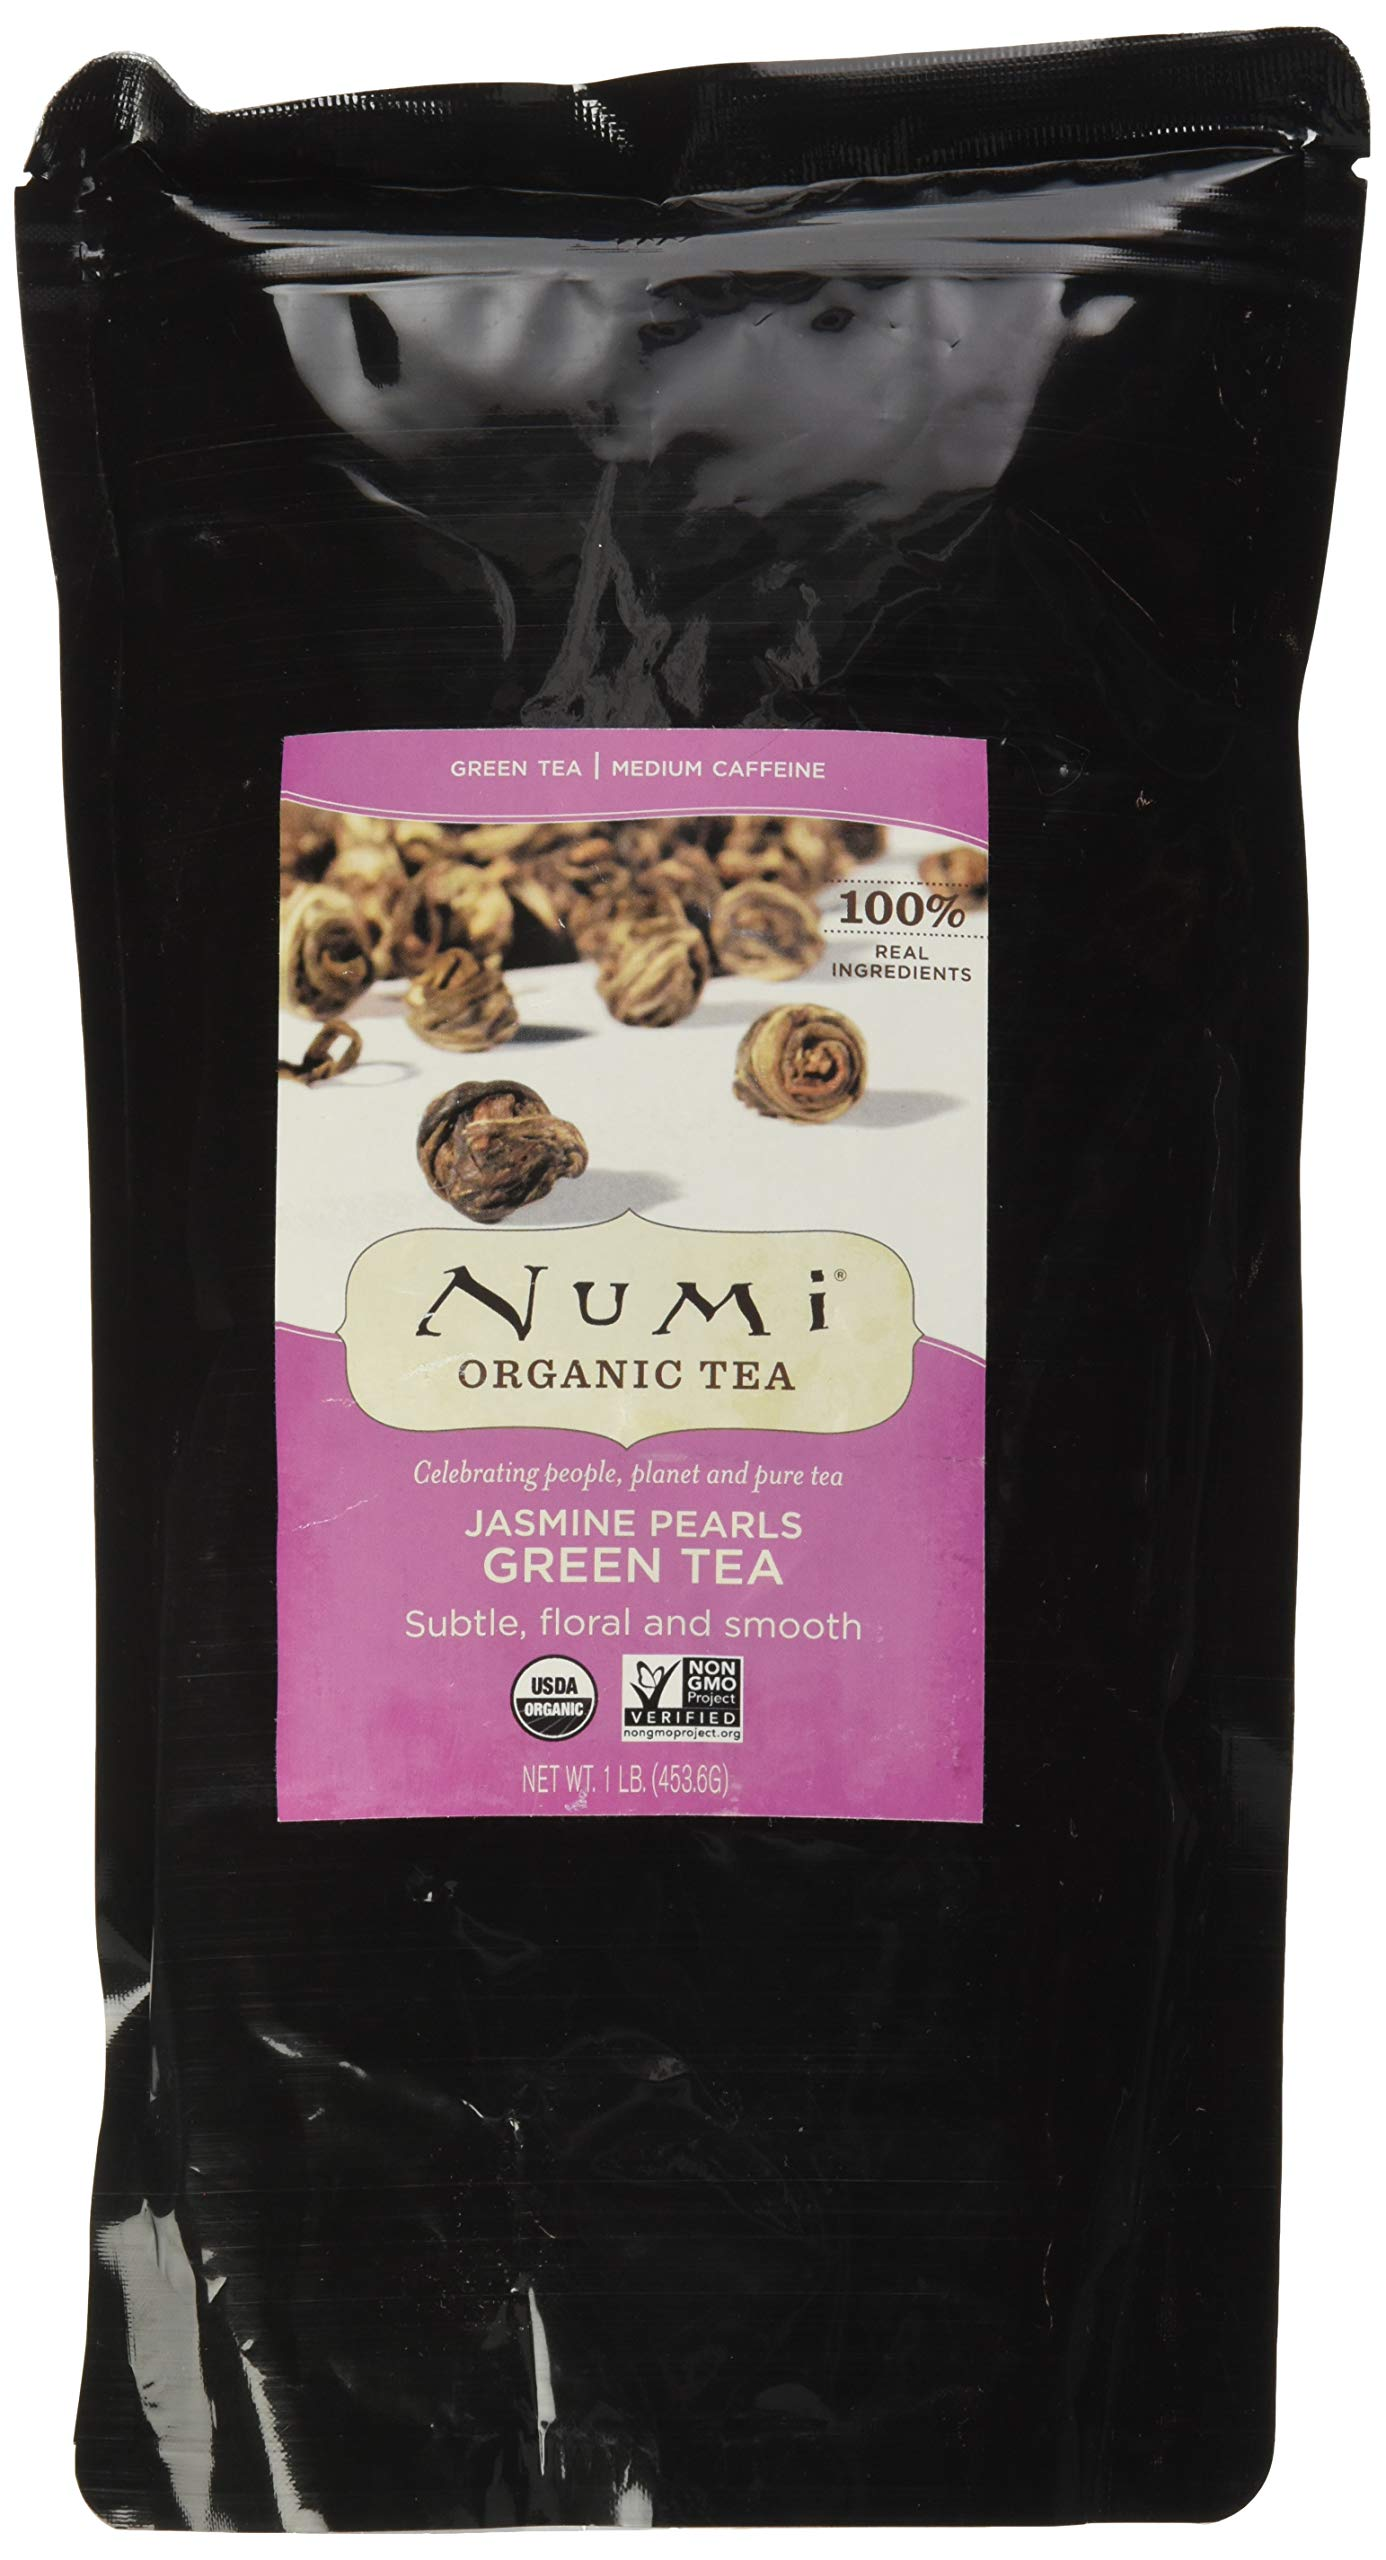 Numi Organic Tea Jasmine Pearls, 16 Ounce Pouch, Loose Leaf Green Tea (Packaging May Vary) by Numi